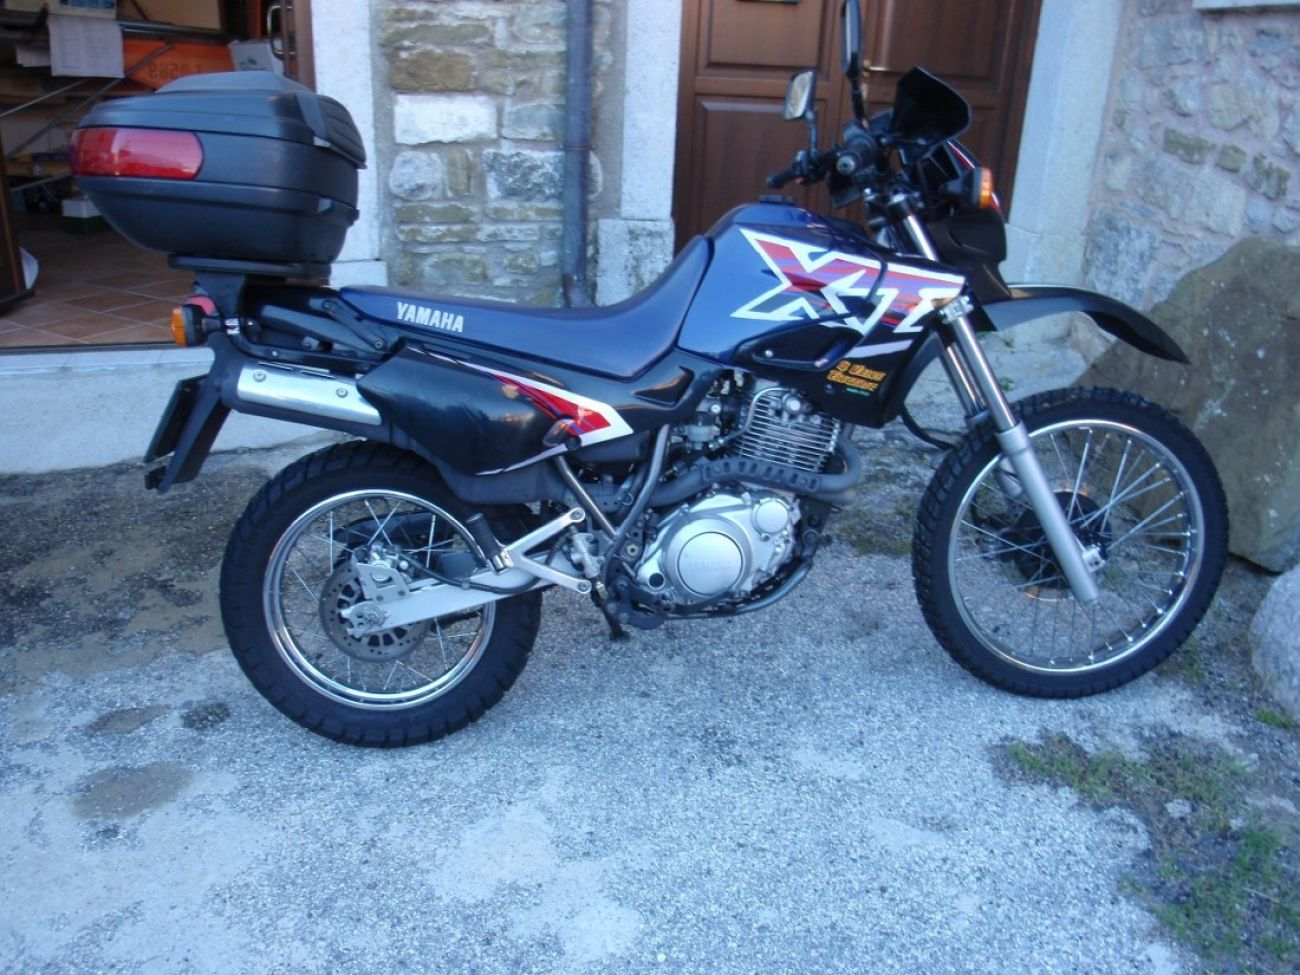 1996 yamaha xt 600 e pics specs and information. Black Bedroom Furniture Sets. Home Design Ideas